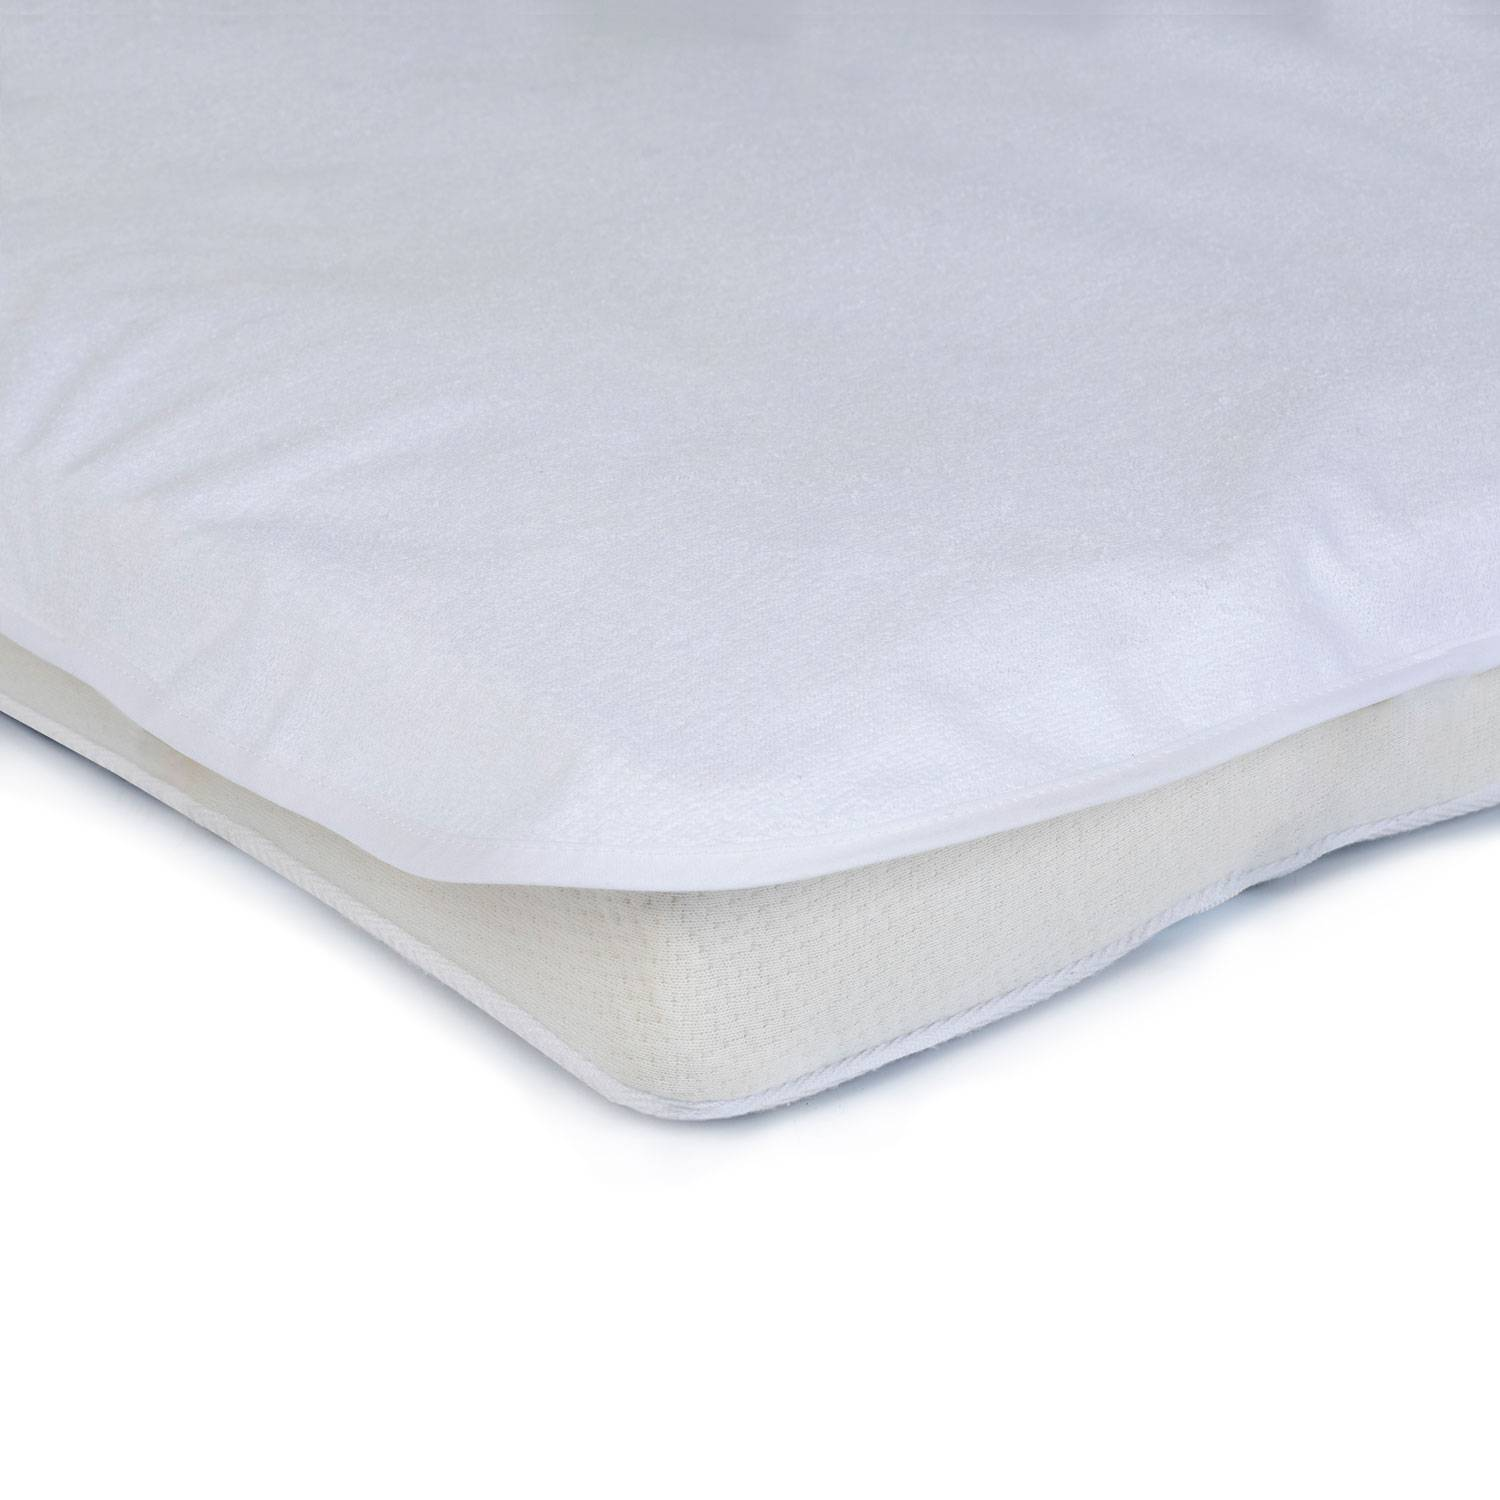 Mille Notti-Protect Baby Mattress Cover 100x150cm, White